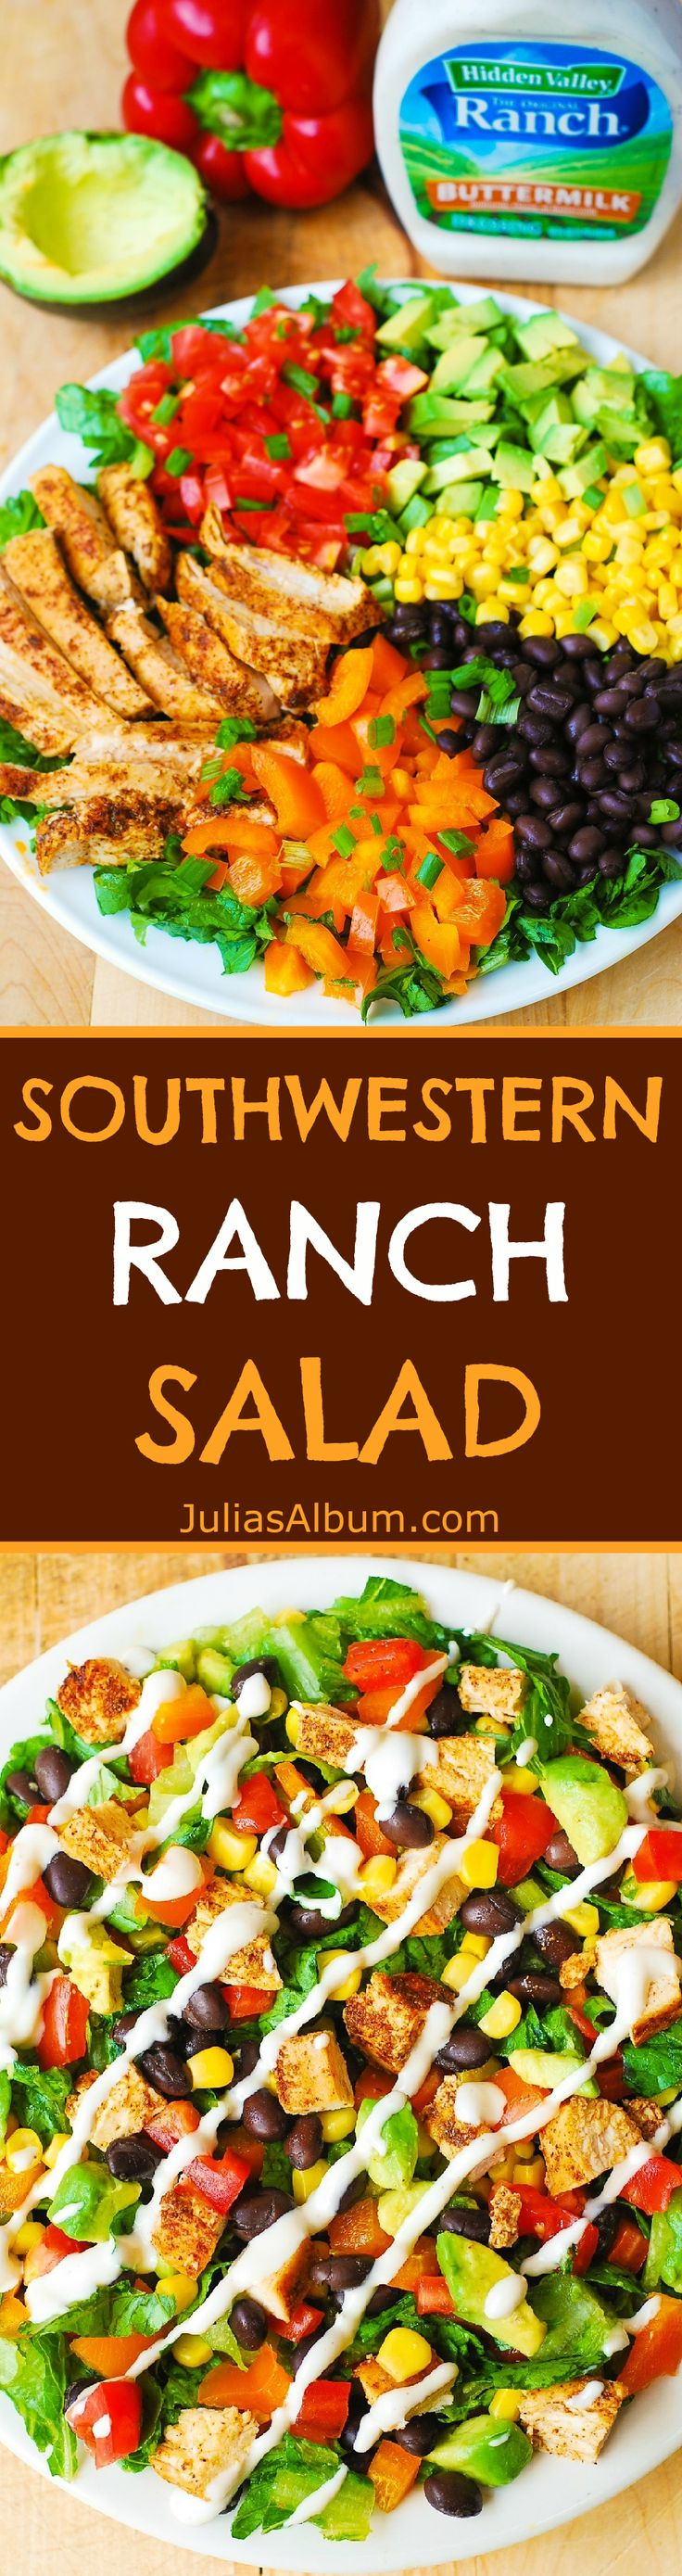 Avocado Chicken Southwestern Chopped Salad with Buttermilk Ranch Dressing  #ad #sponsored by Hidden Valley